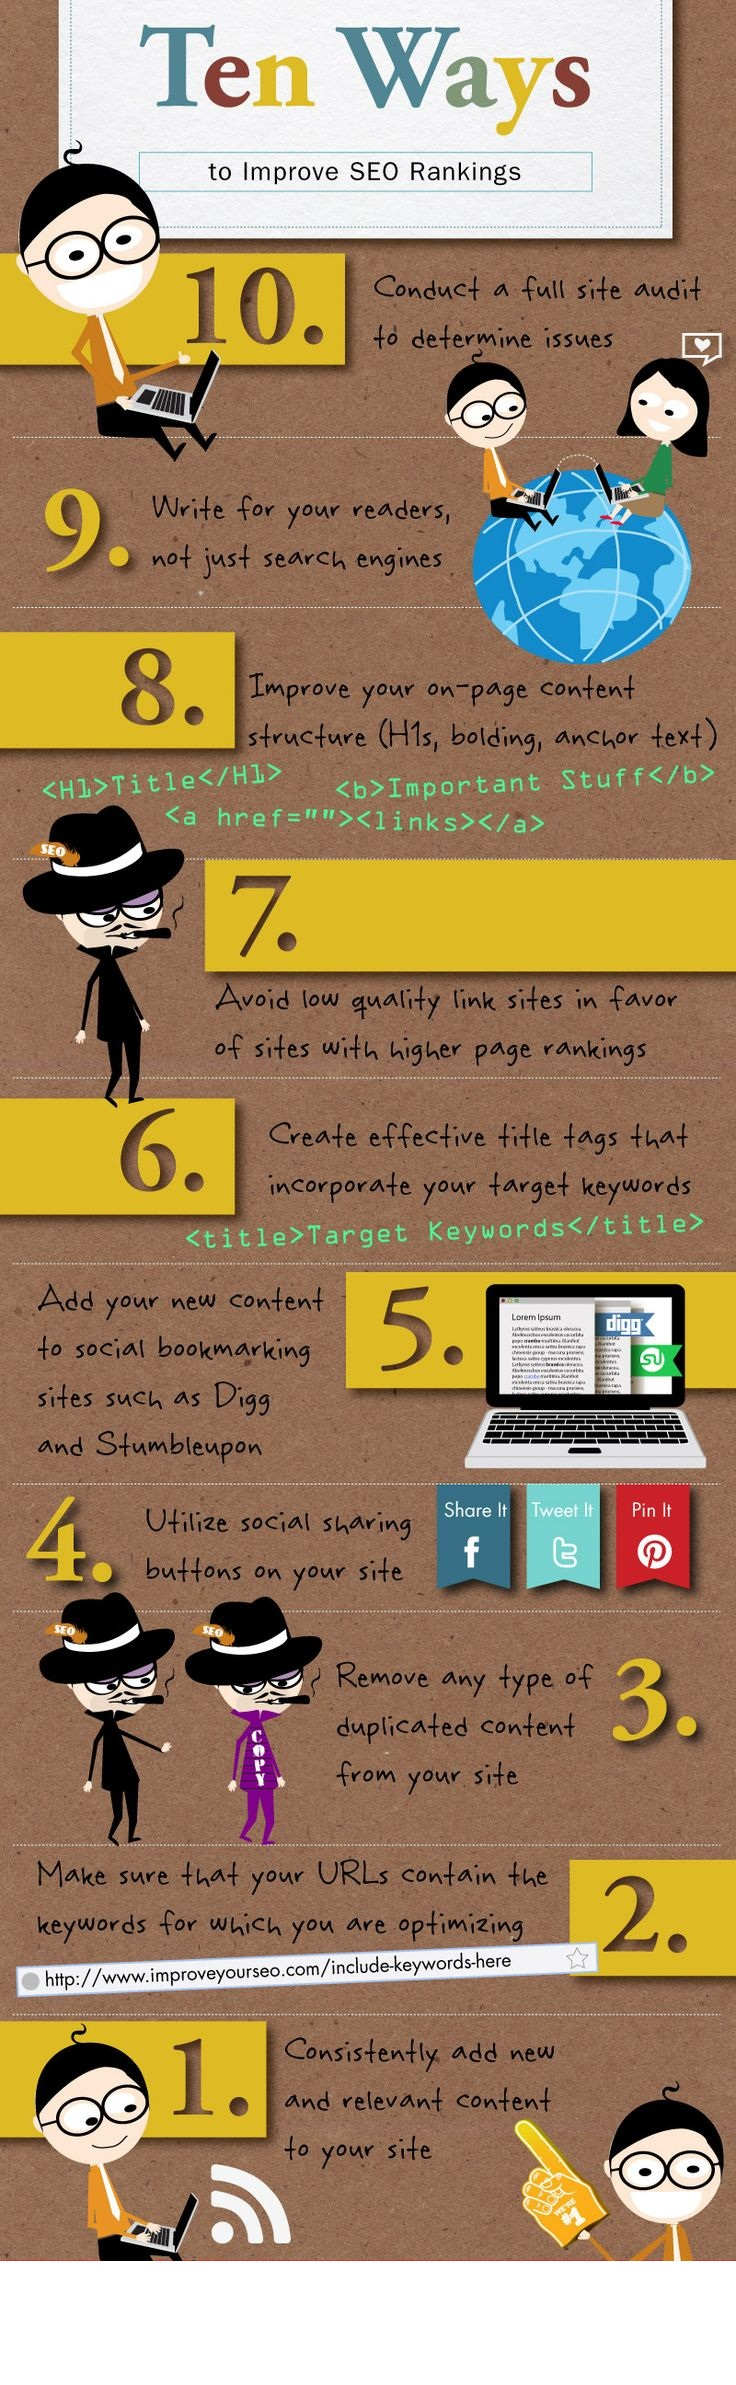 10 Simple Ways To Quickly Improve SEO Rankings - Image 1